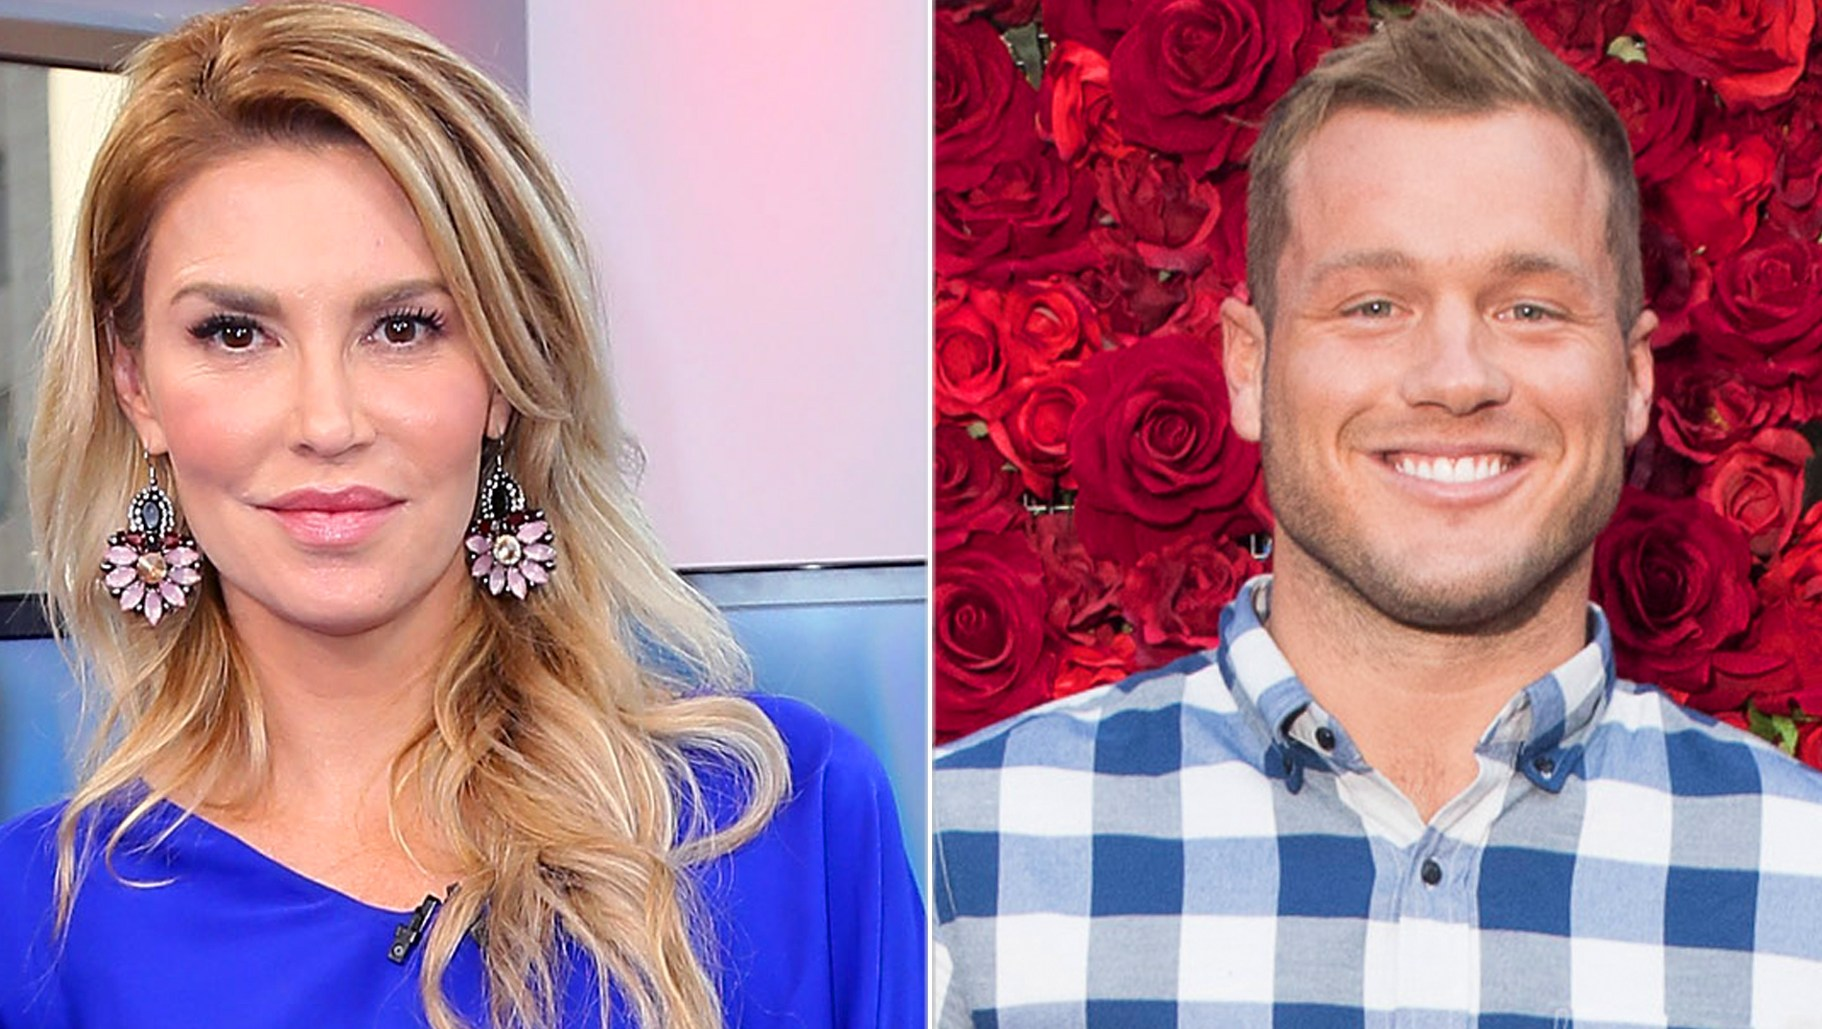 Brandi Glanville Shades Colton Underwood's Kissing Skills: See More Reactions!